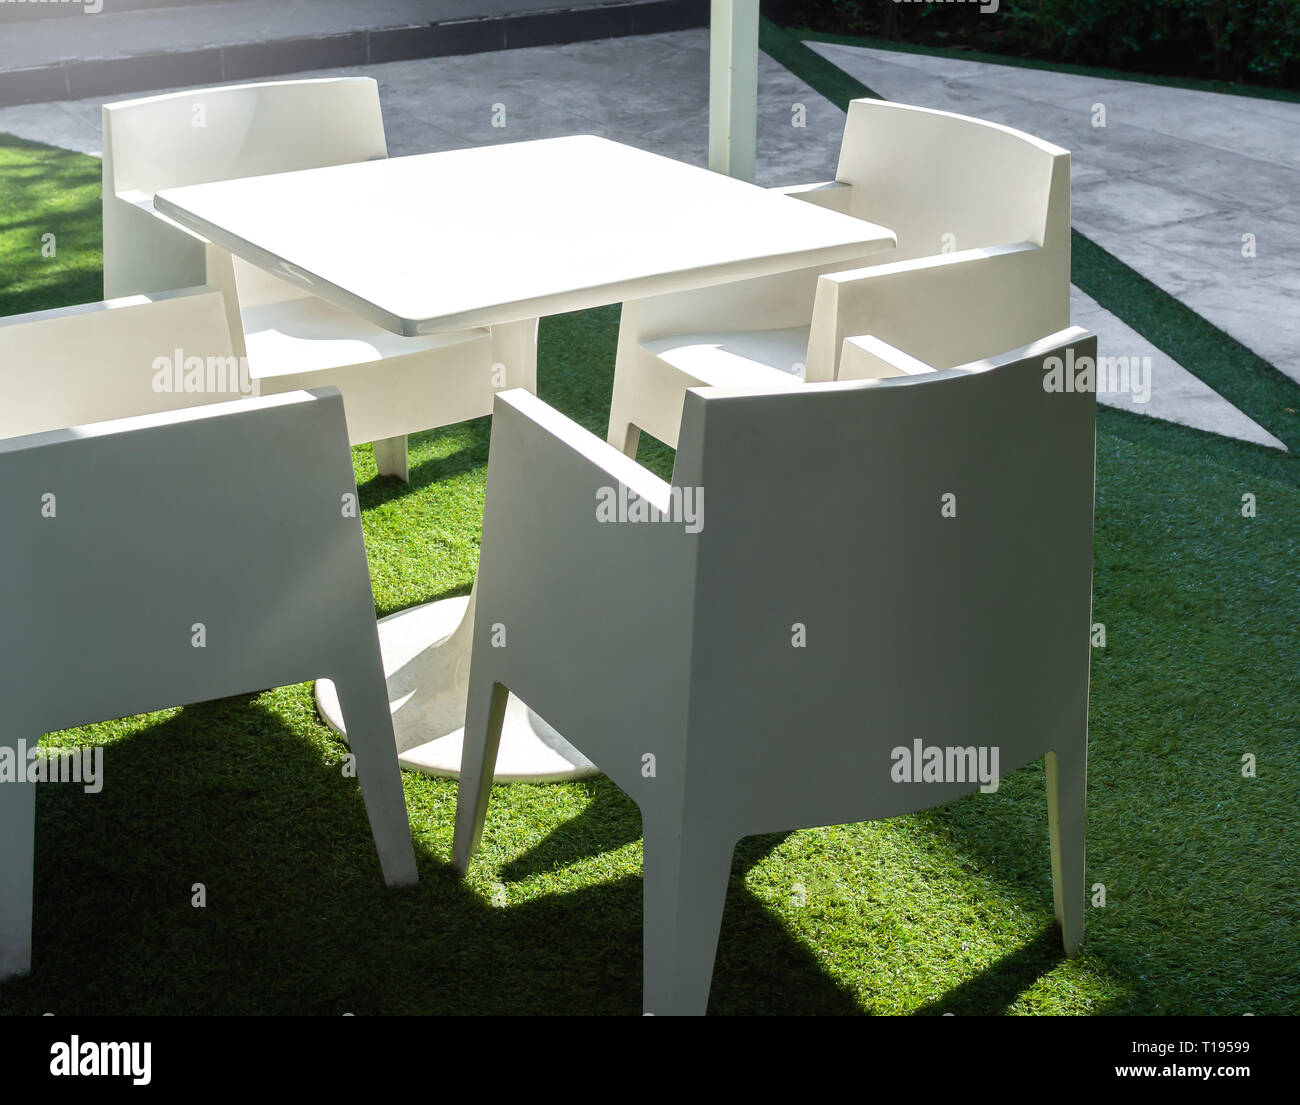 Resin Chair Photos & Resin Chair Images - Alamy